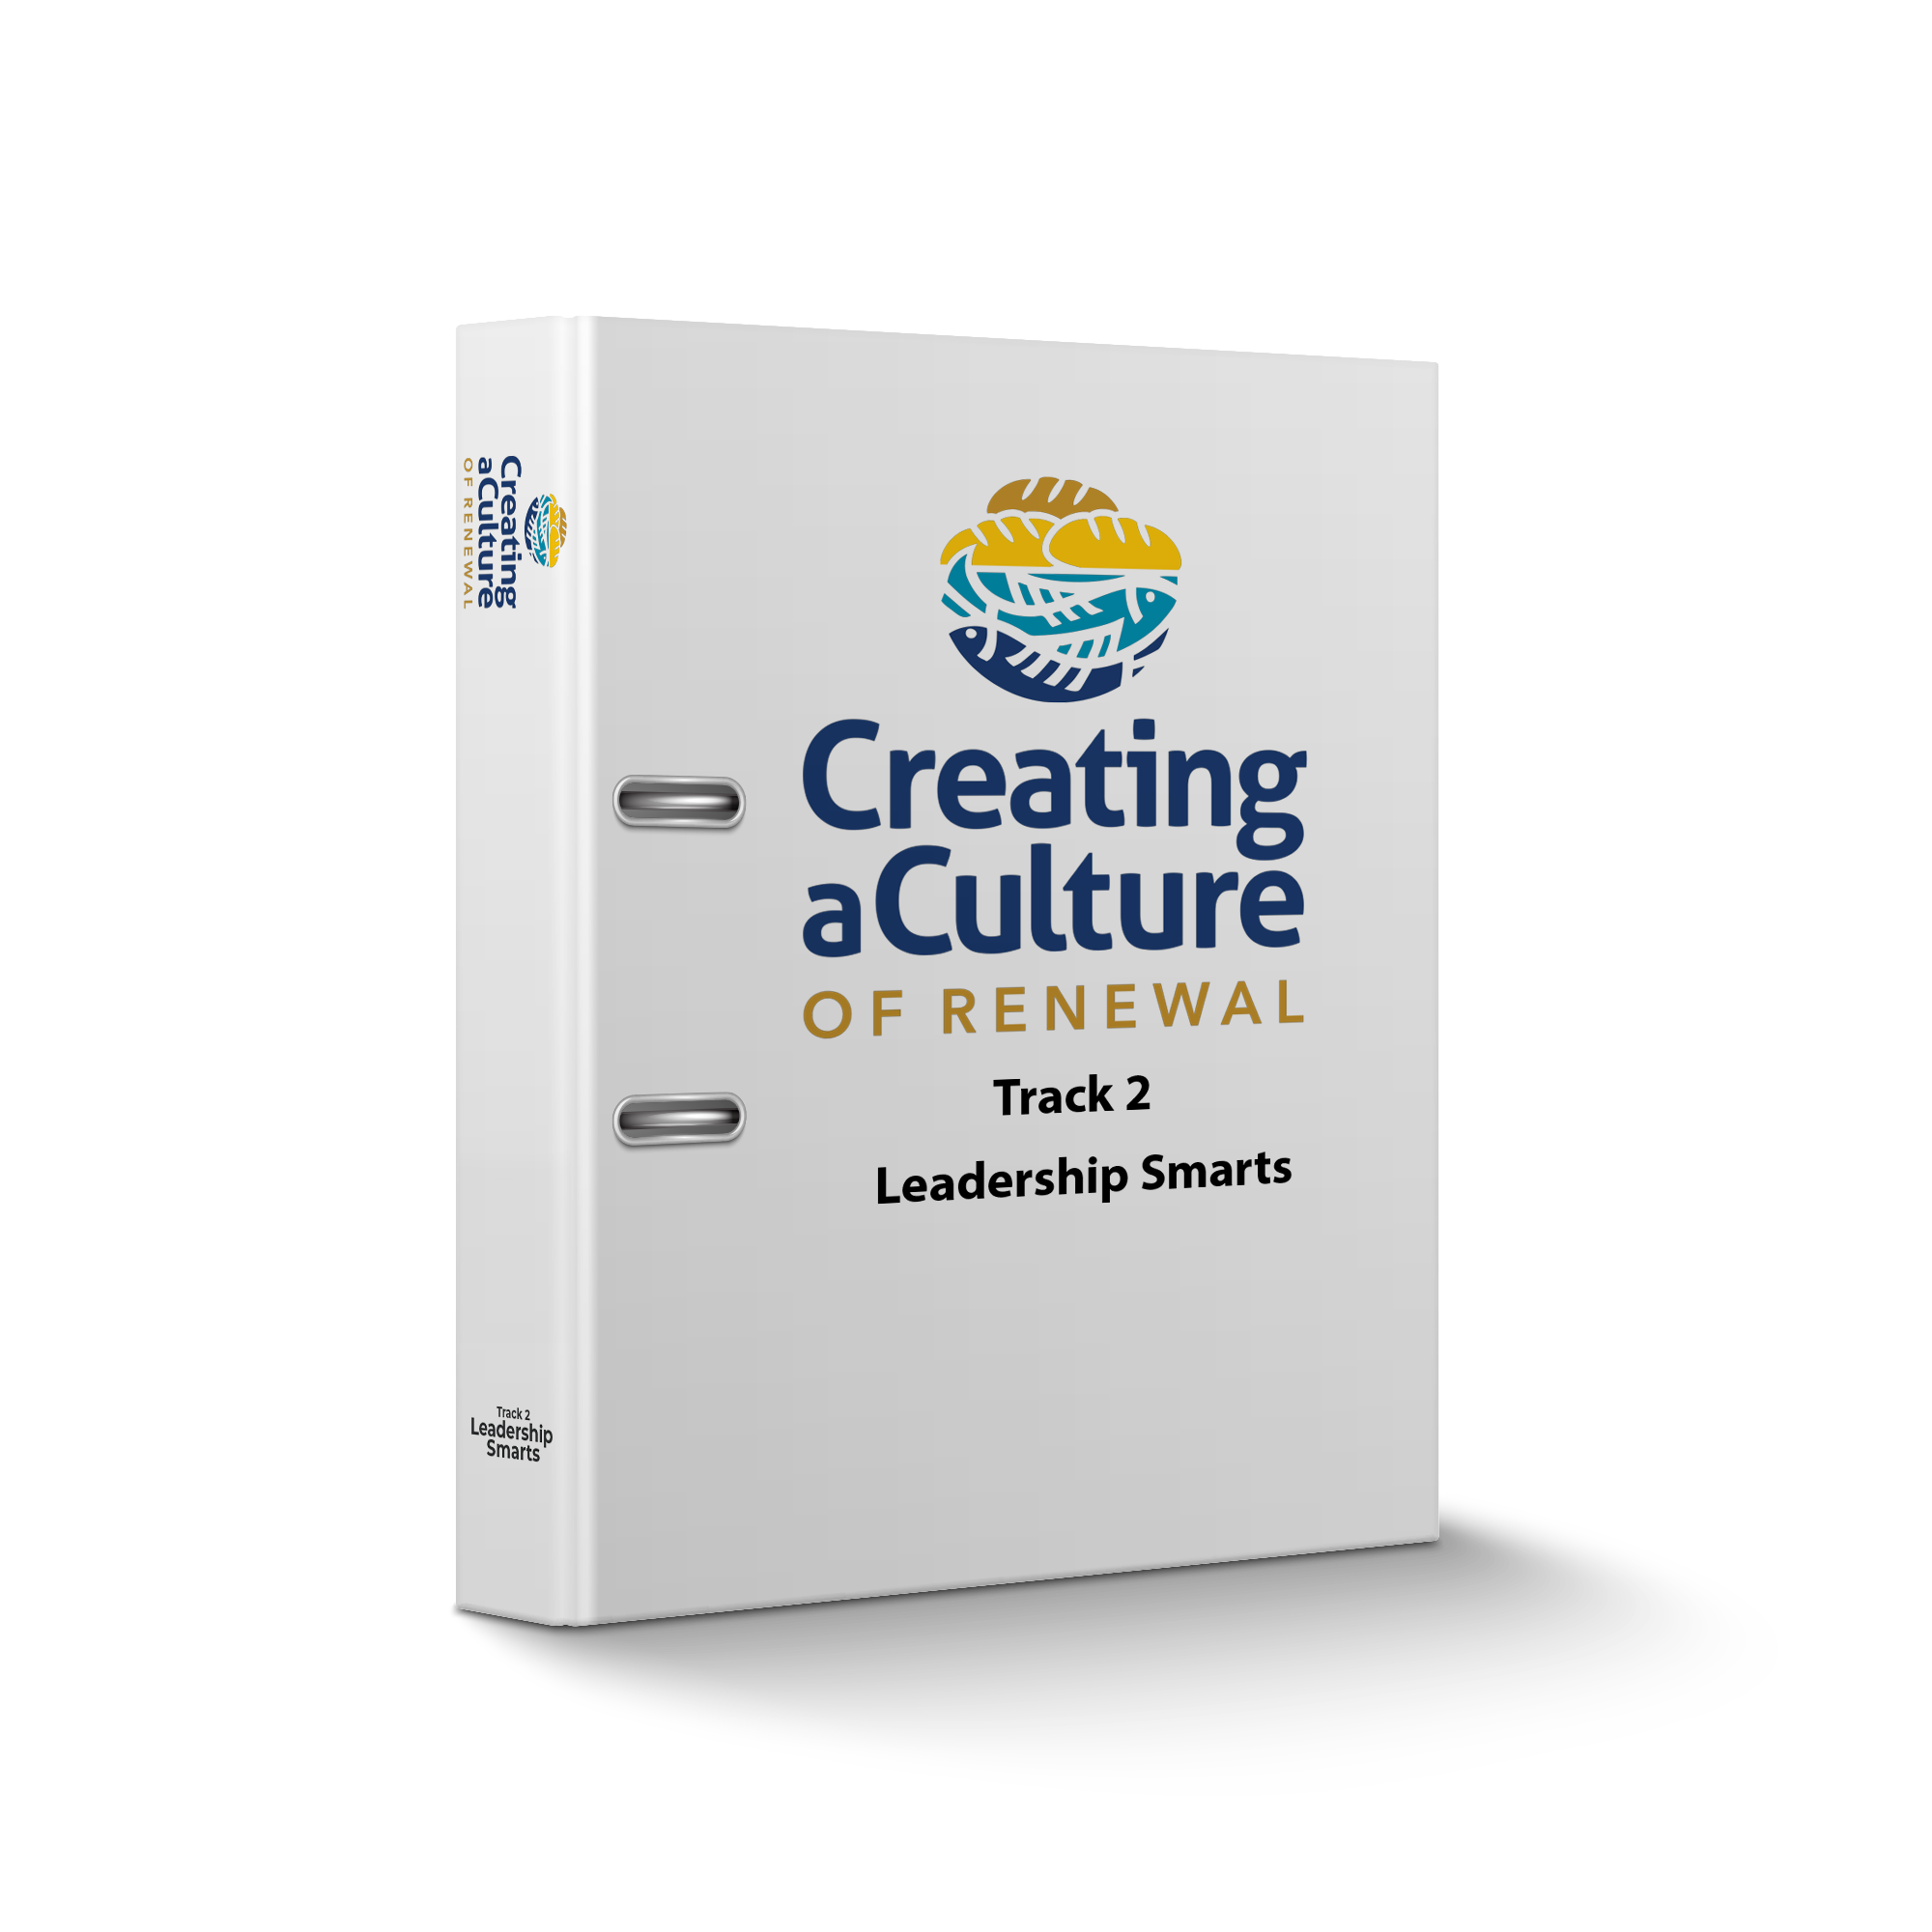 Creating-a-Culture-of-Renewal-Work-Book mock up T2